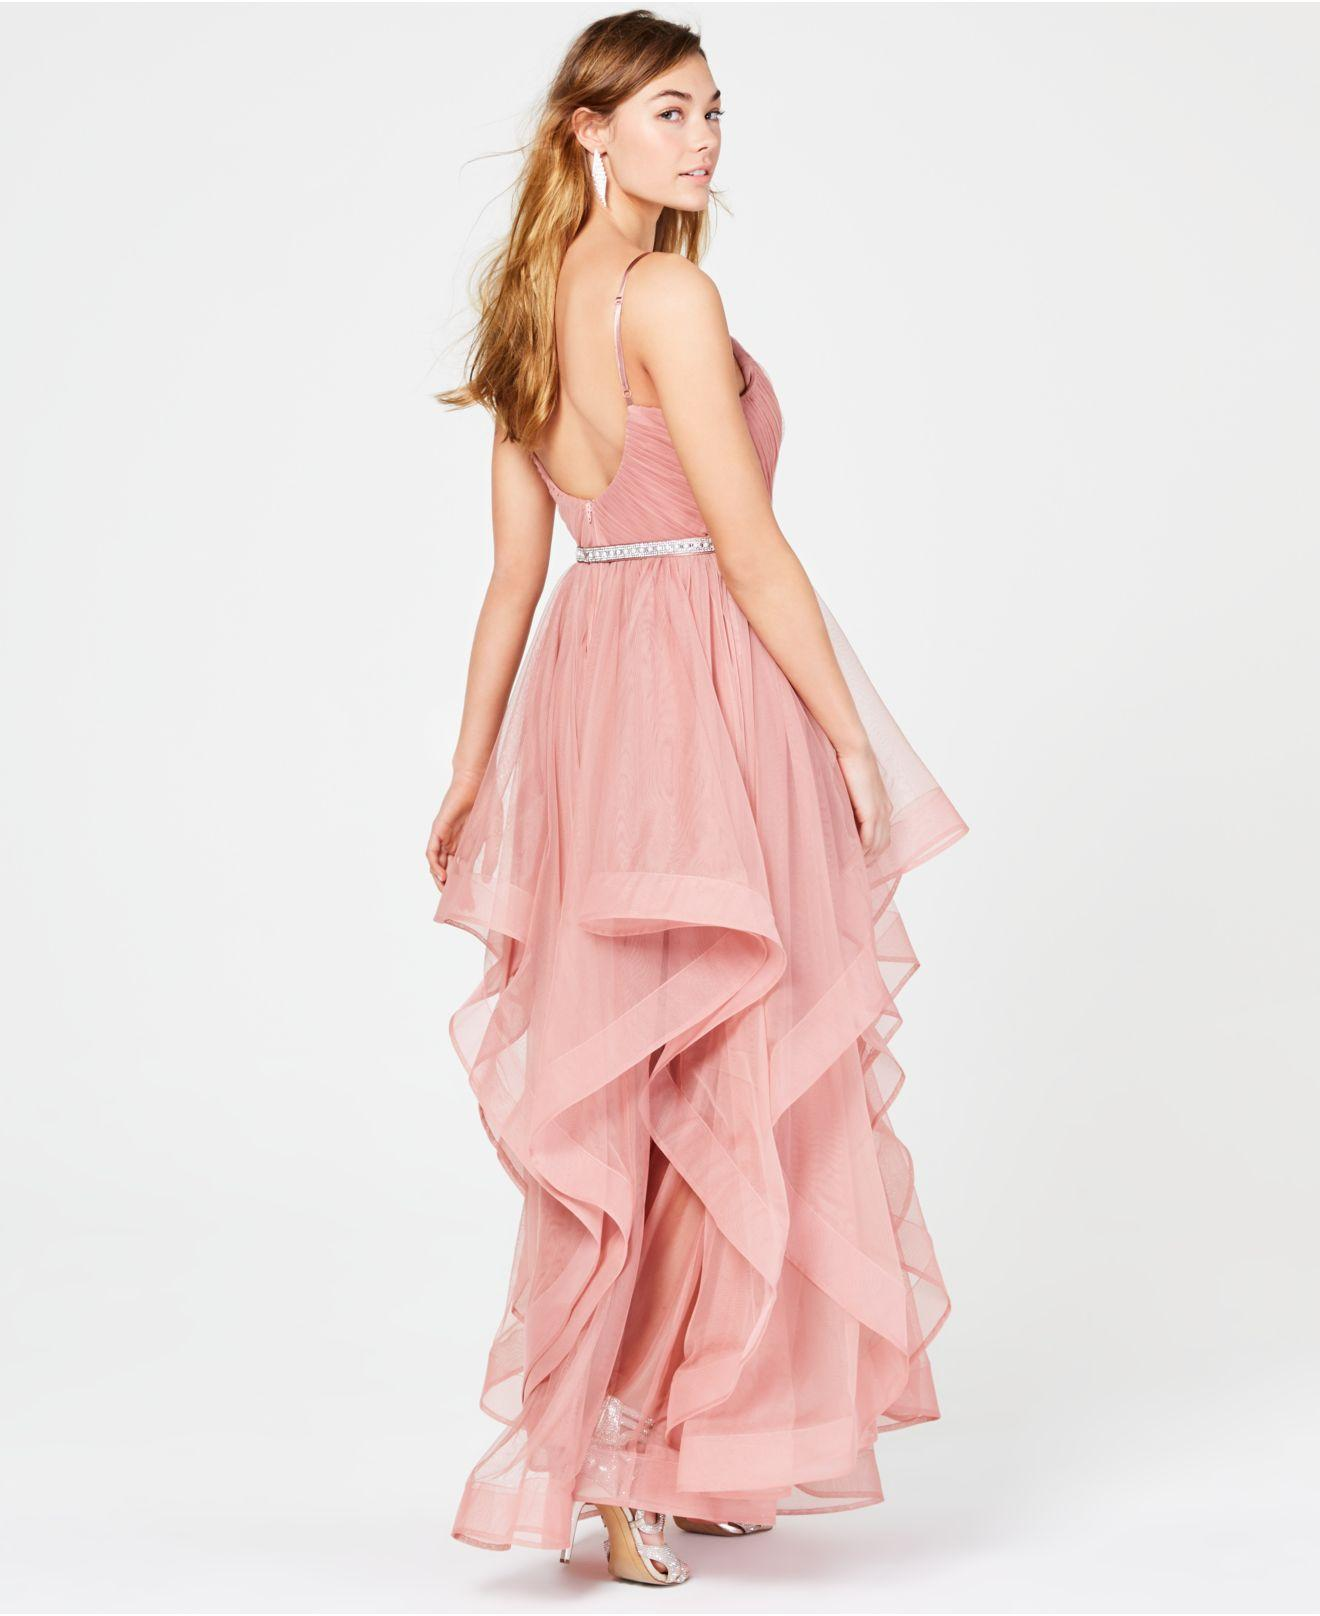 7941a7b2343 Sequin Hearts Juniors  Rhinestone-belted Layered Gown in Pink - Lyst